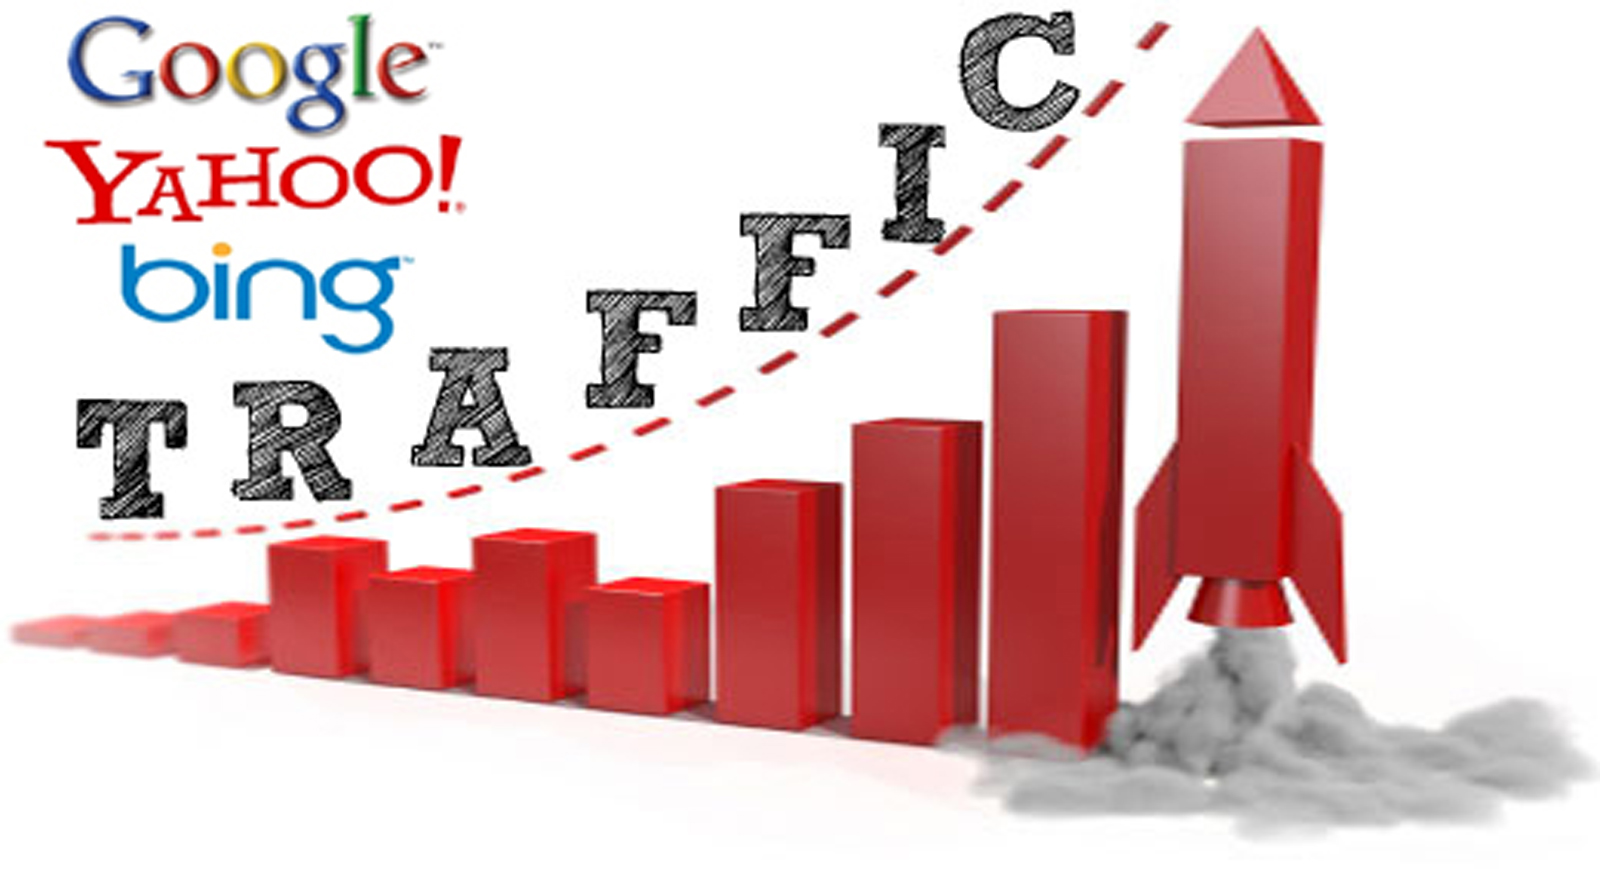 Generate 2000+ Real Safe Traffics for your Website-Blog with Search Engine & Social Media Referral